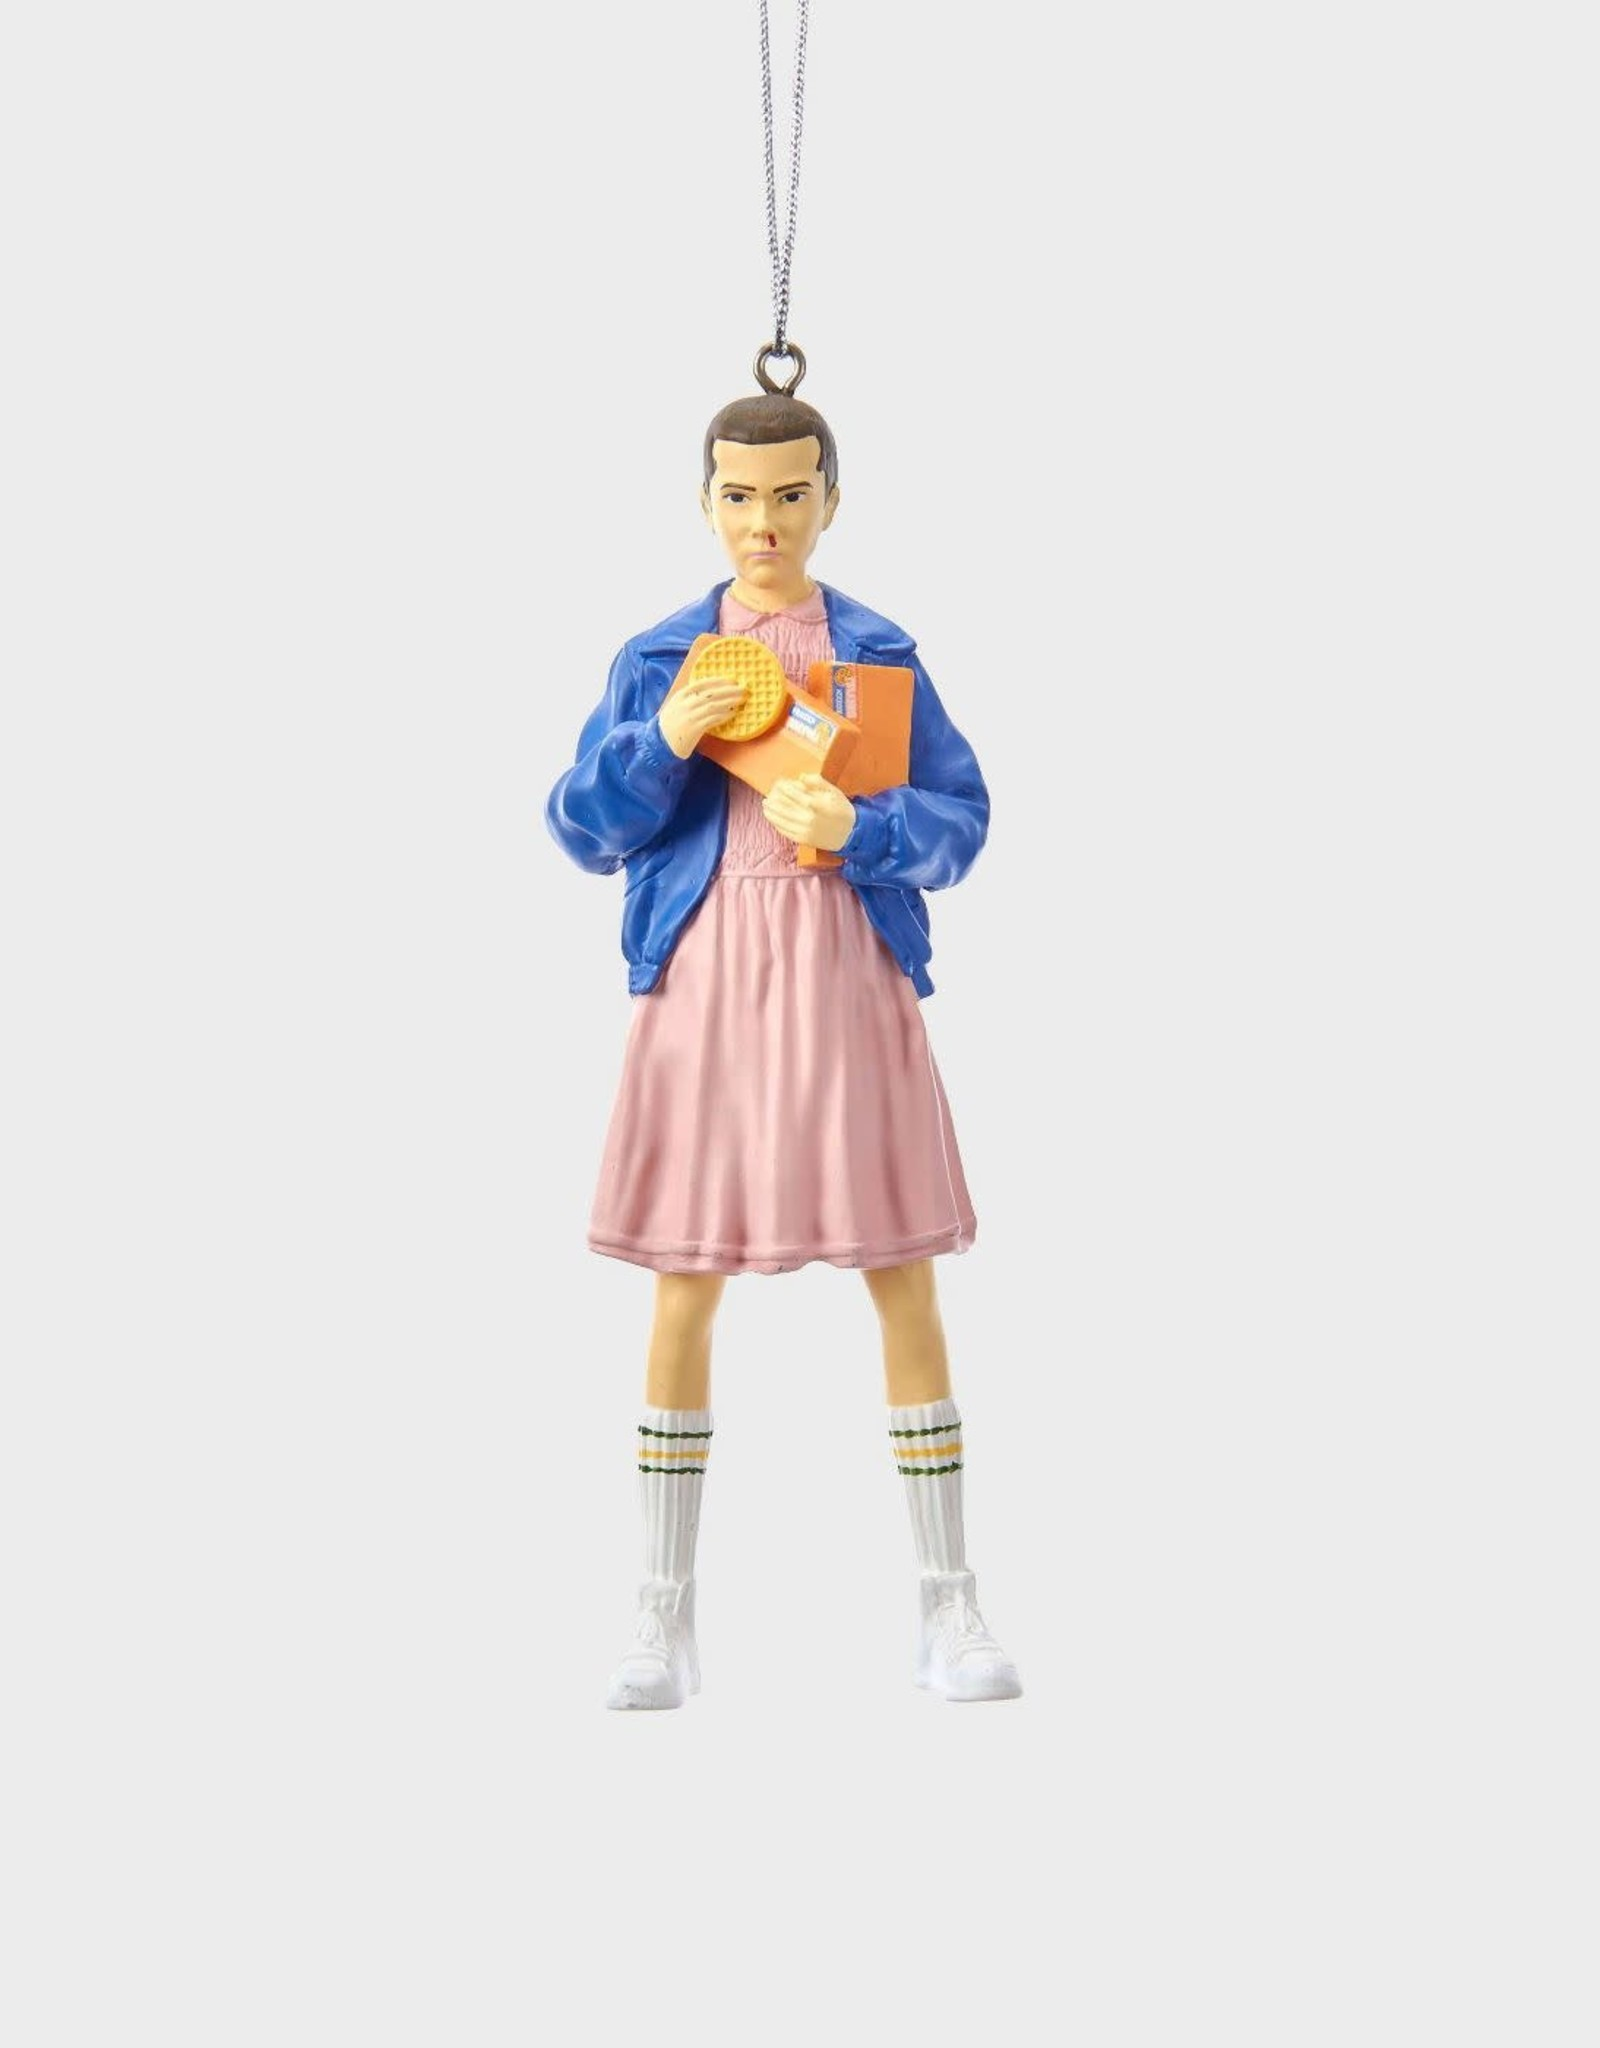 Ornament - Eleven (Stranger Things)